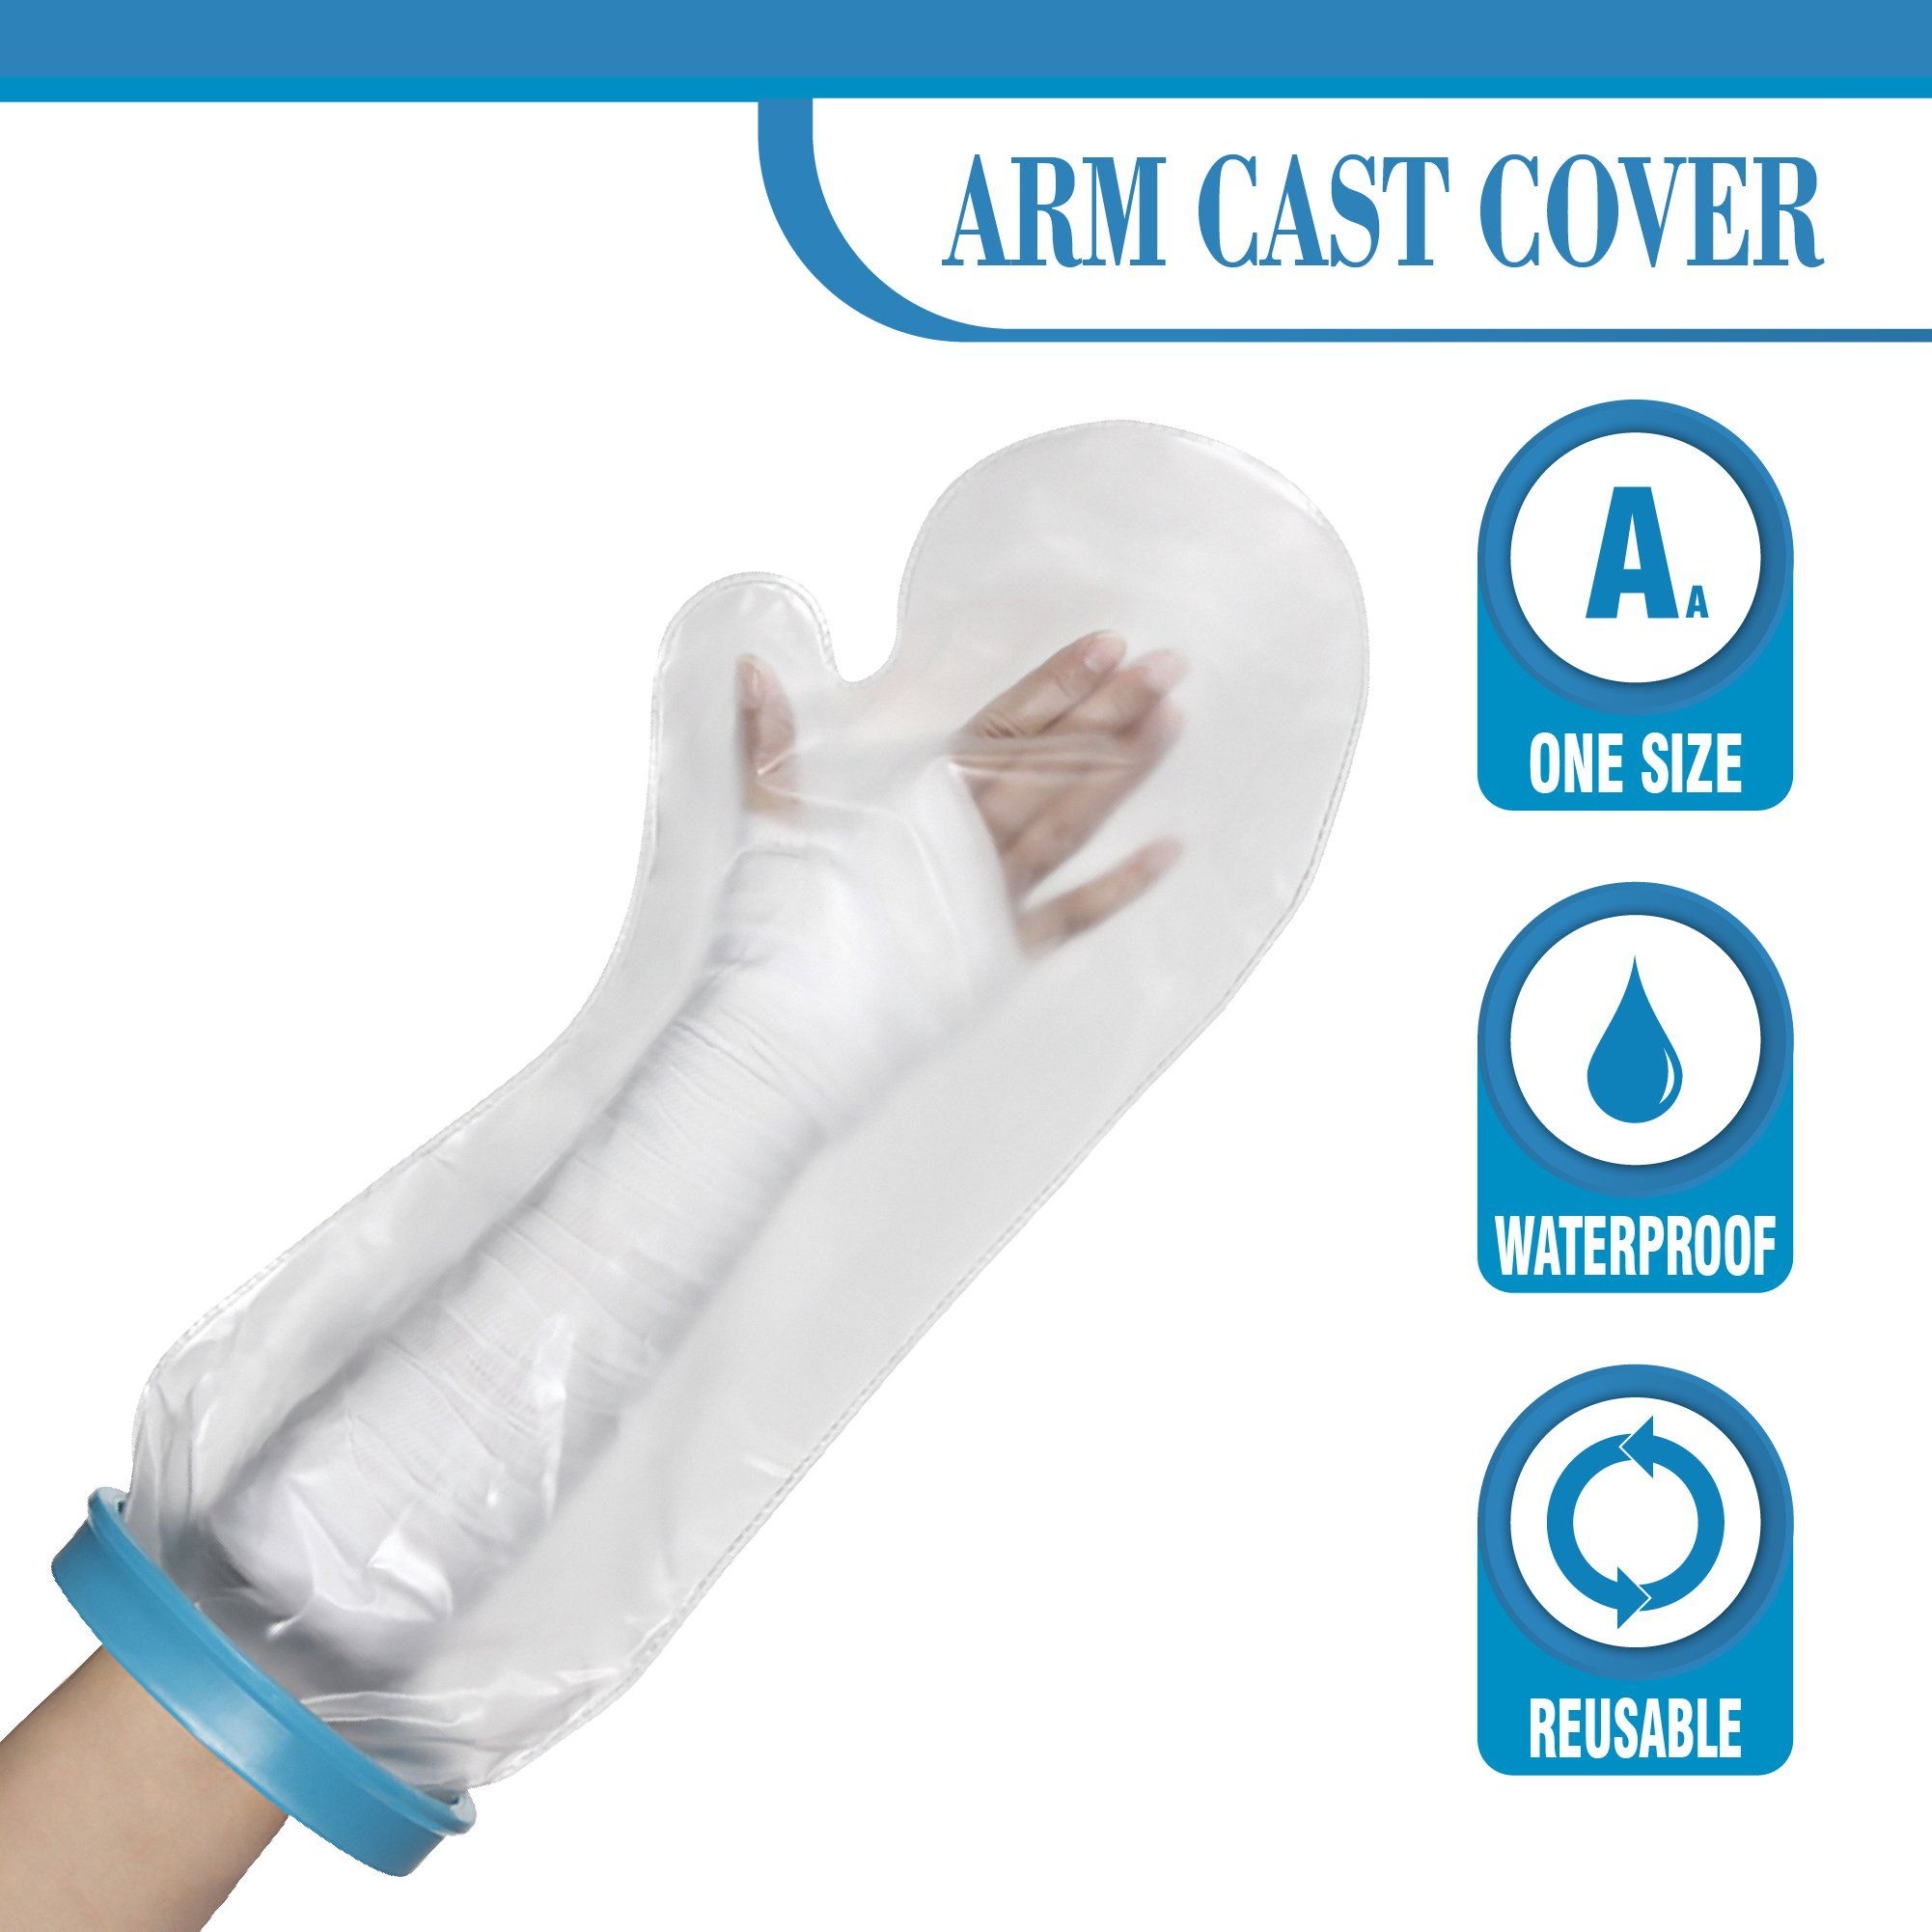 Wilsco Waterproof Arm Cast Cover for Shower ~ Keep Bandages & Casts Dry in The Shower, Pool, Ocean ~ Fully Submersible + Reusable ~ Keep Sand Out ~ Keep New Tattoos Covered